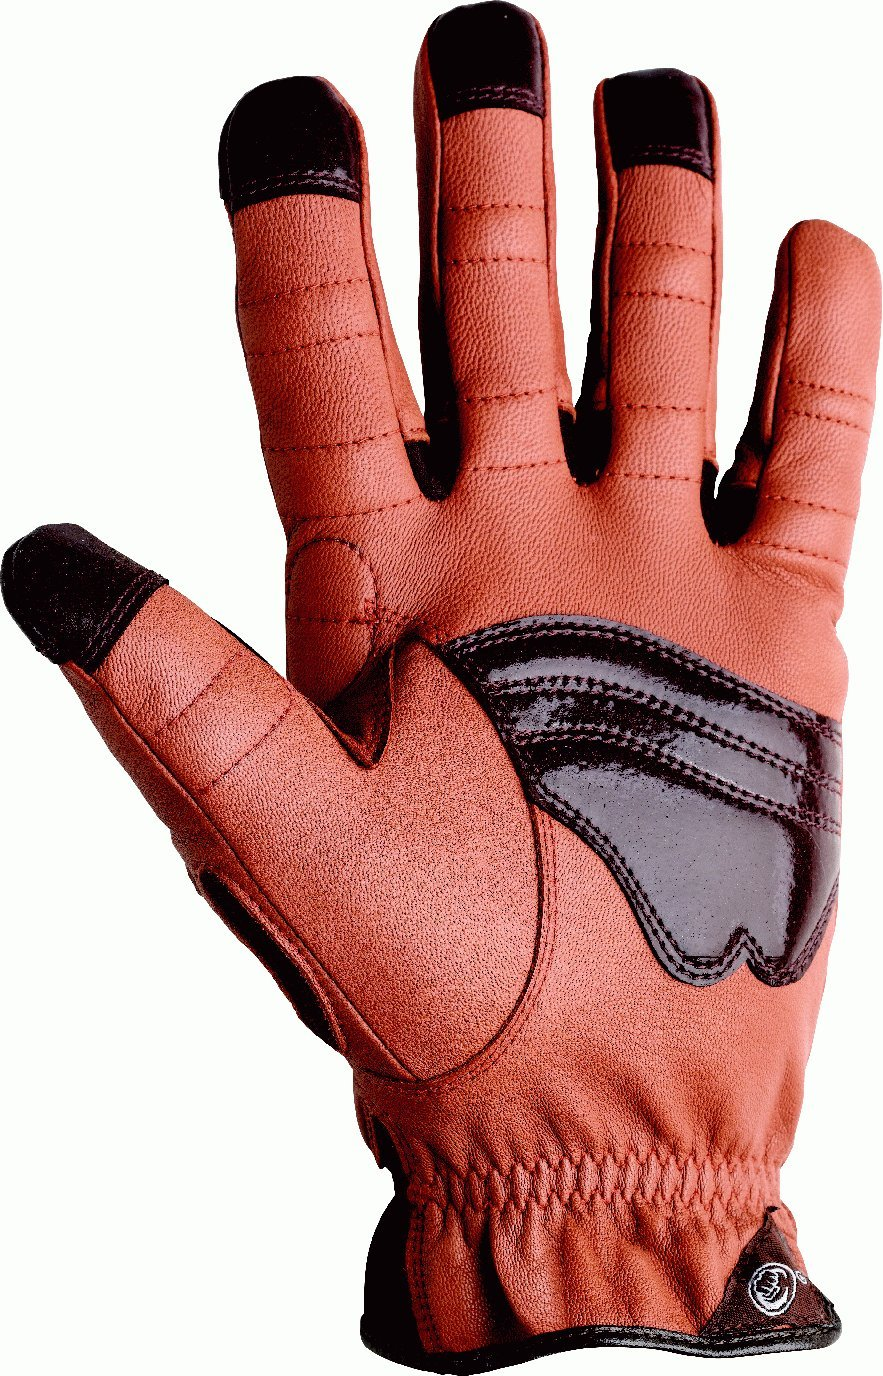 Bionic leather work gloves - Bionic Leather Work Gloves 5